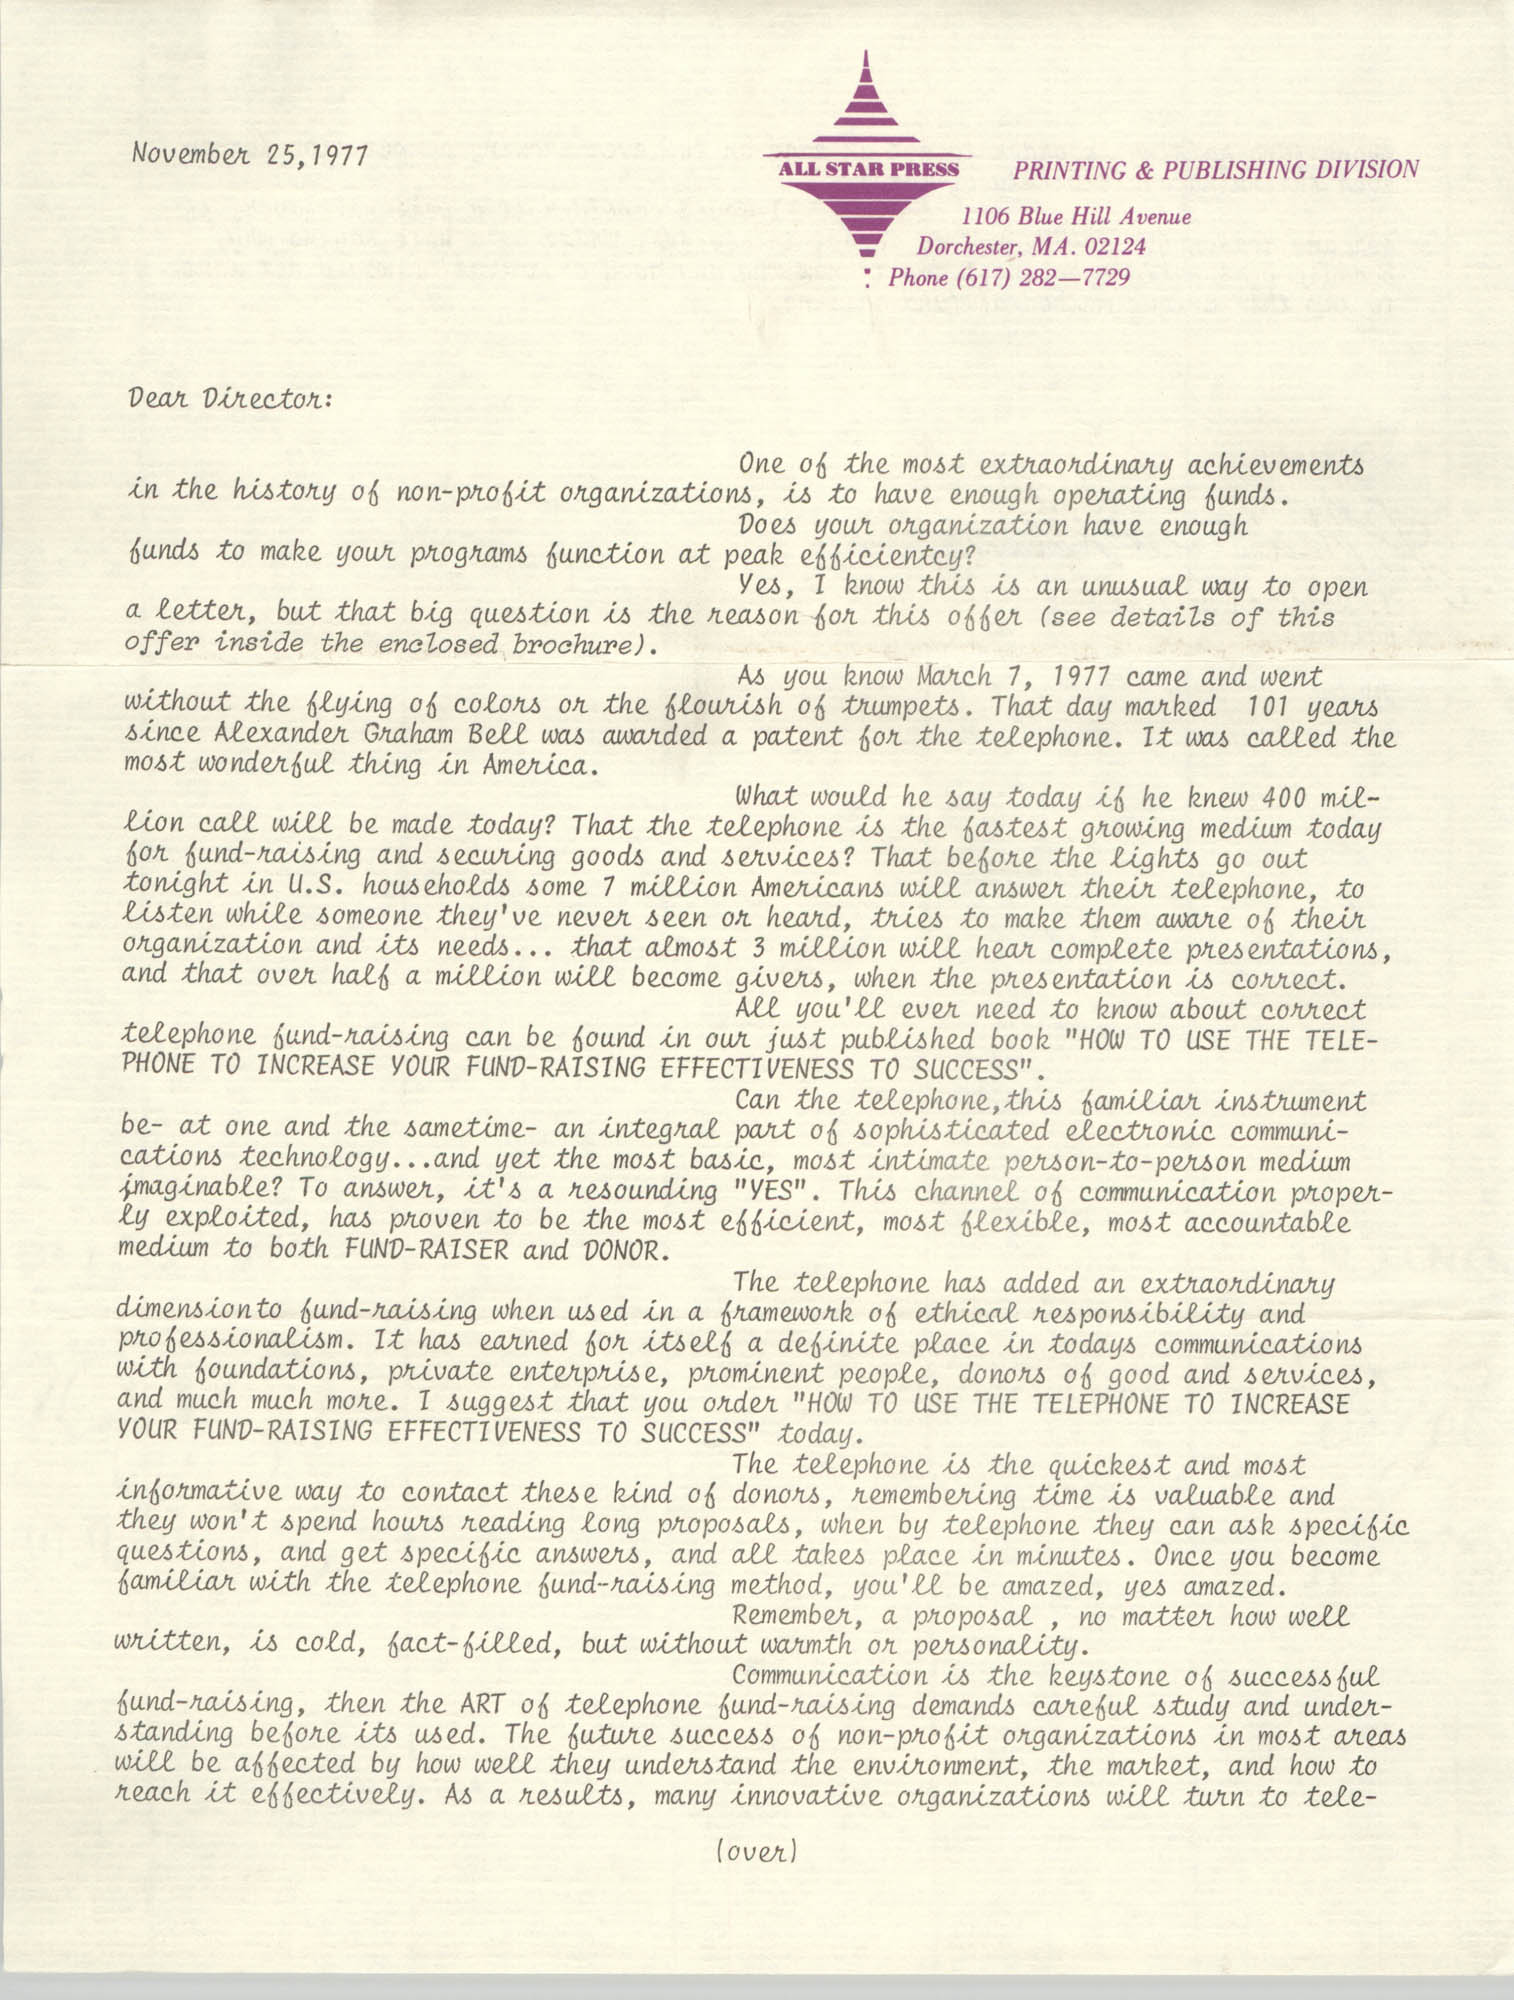 Letter from J. Maddison Masters, November 25, 1977